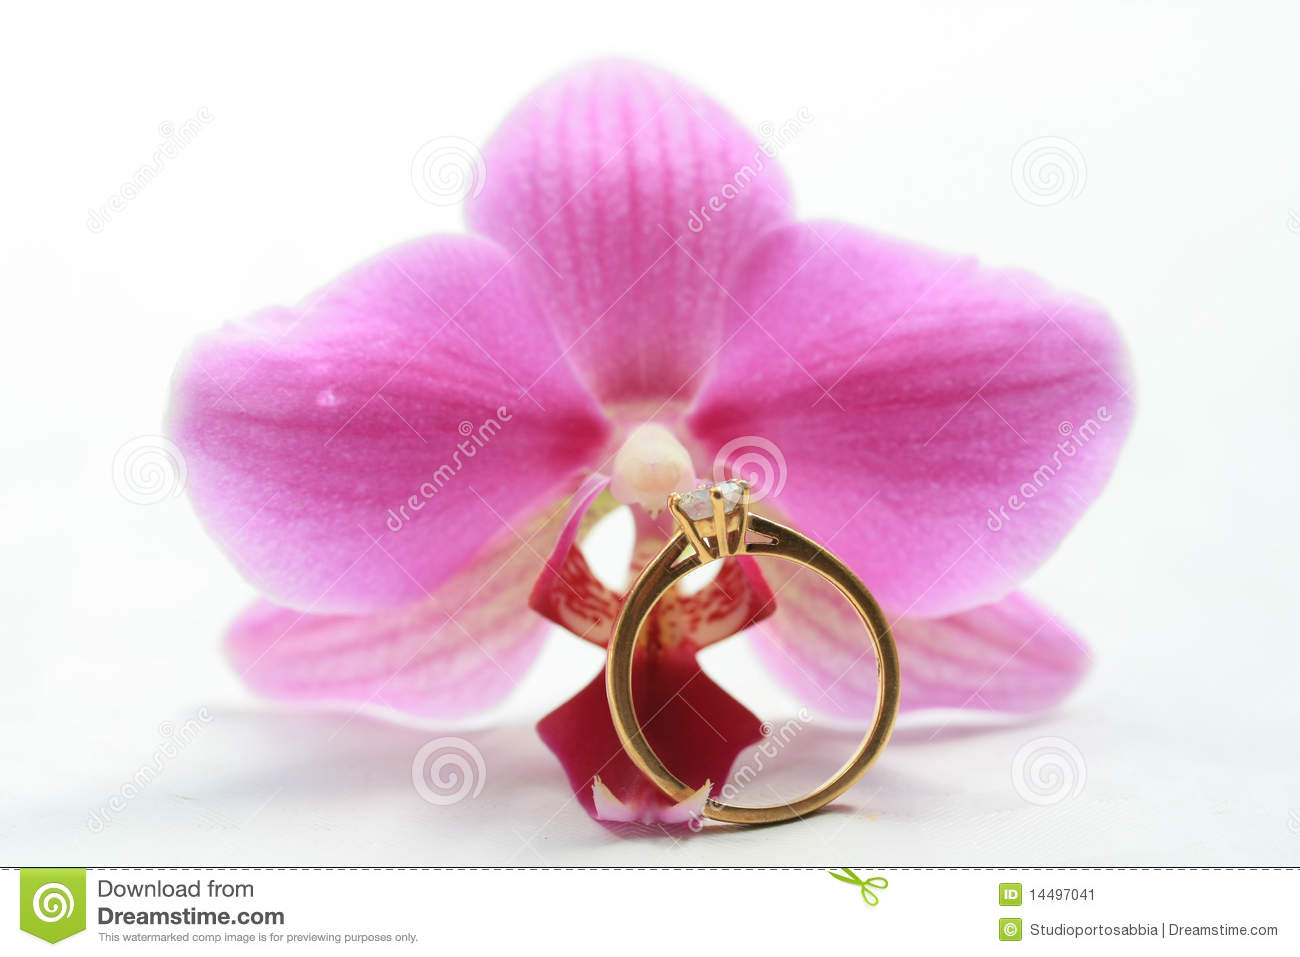 Pink Orchid And Solitaire Engagement Ring Stock Image - Image of ...